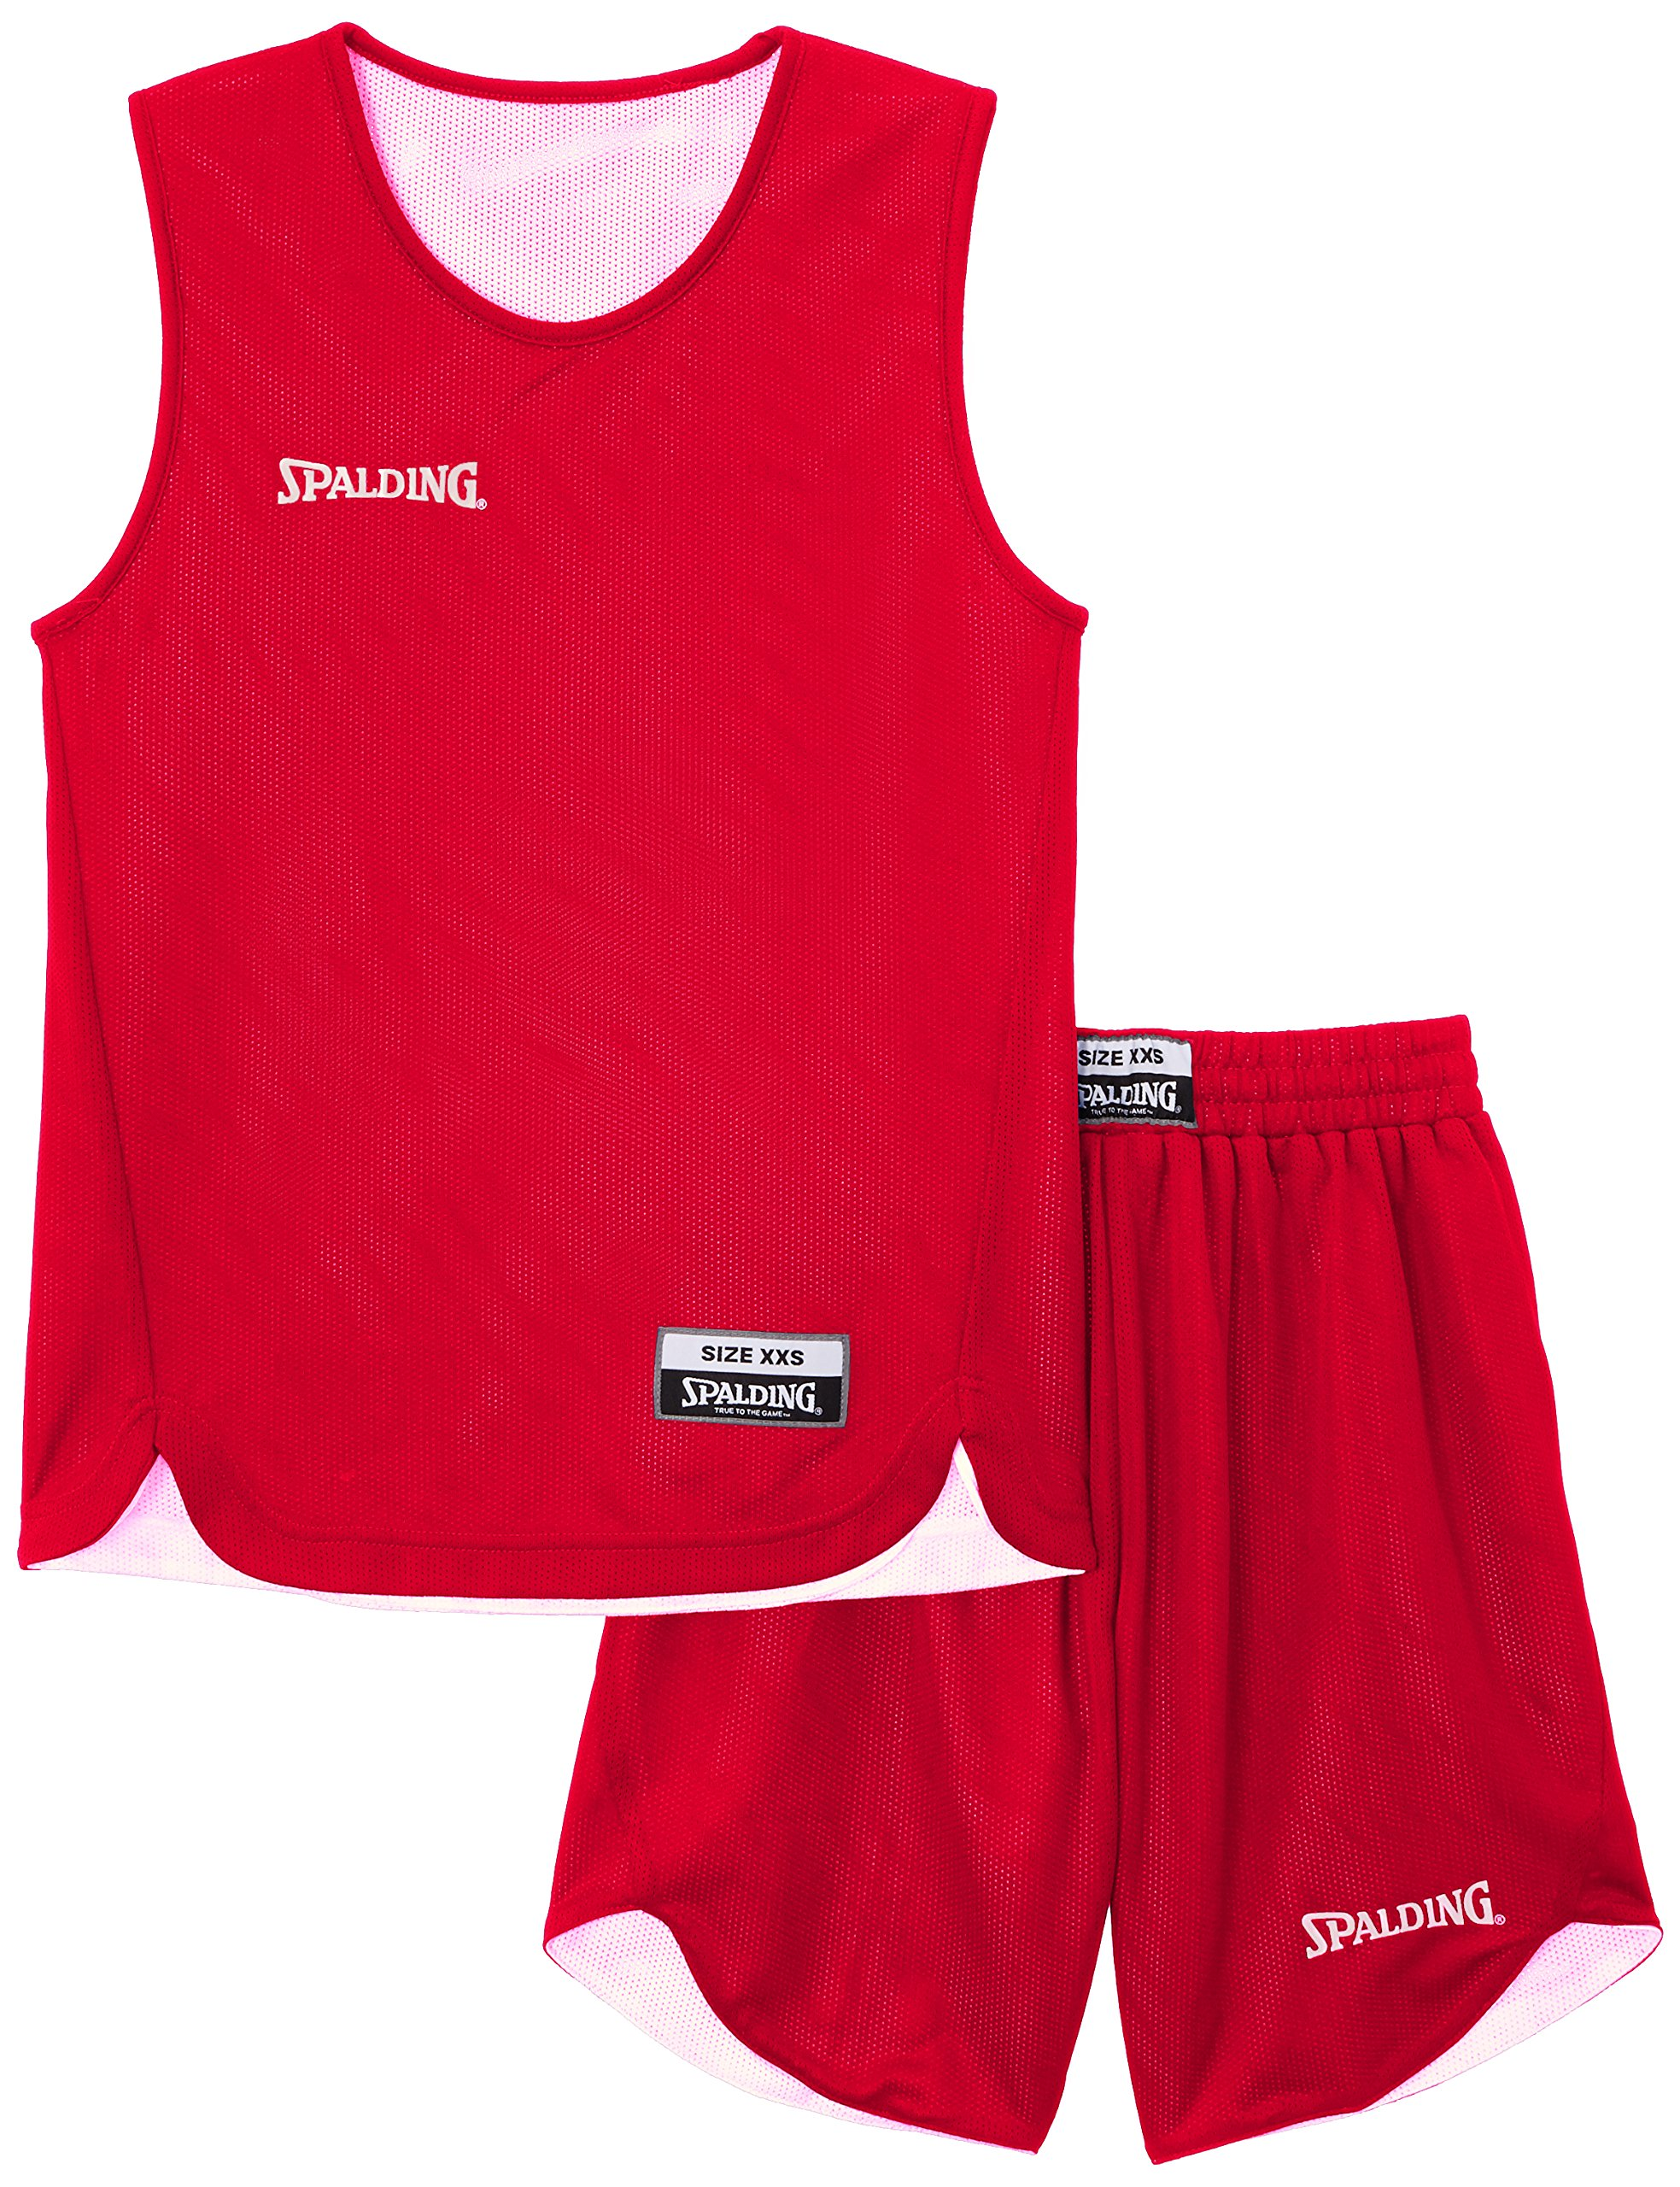 Spalding Teamsport Doubleface - Completo sportivo Unisex - bambini, Rosso (Rot/Weiß), XS/152